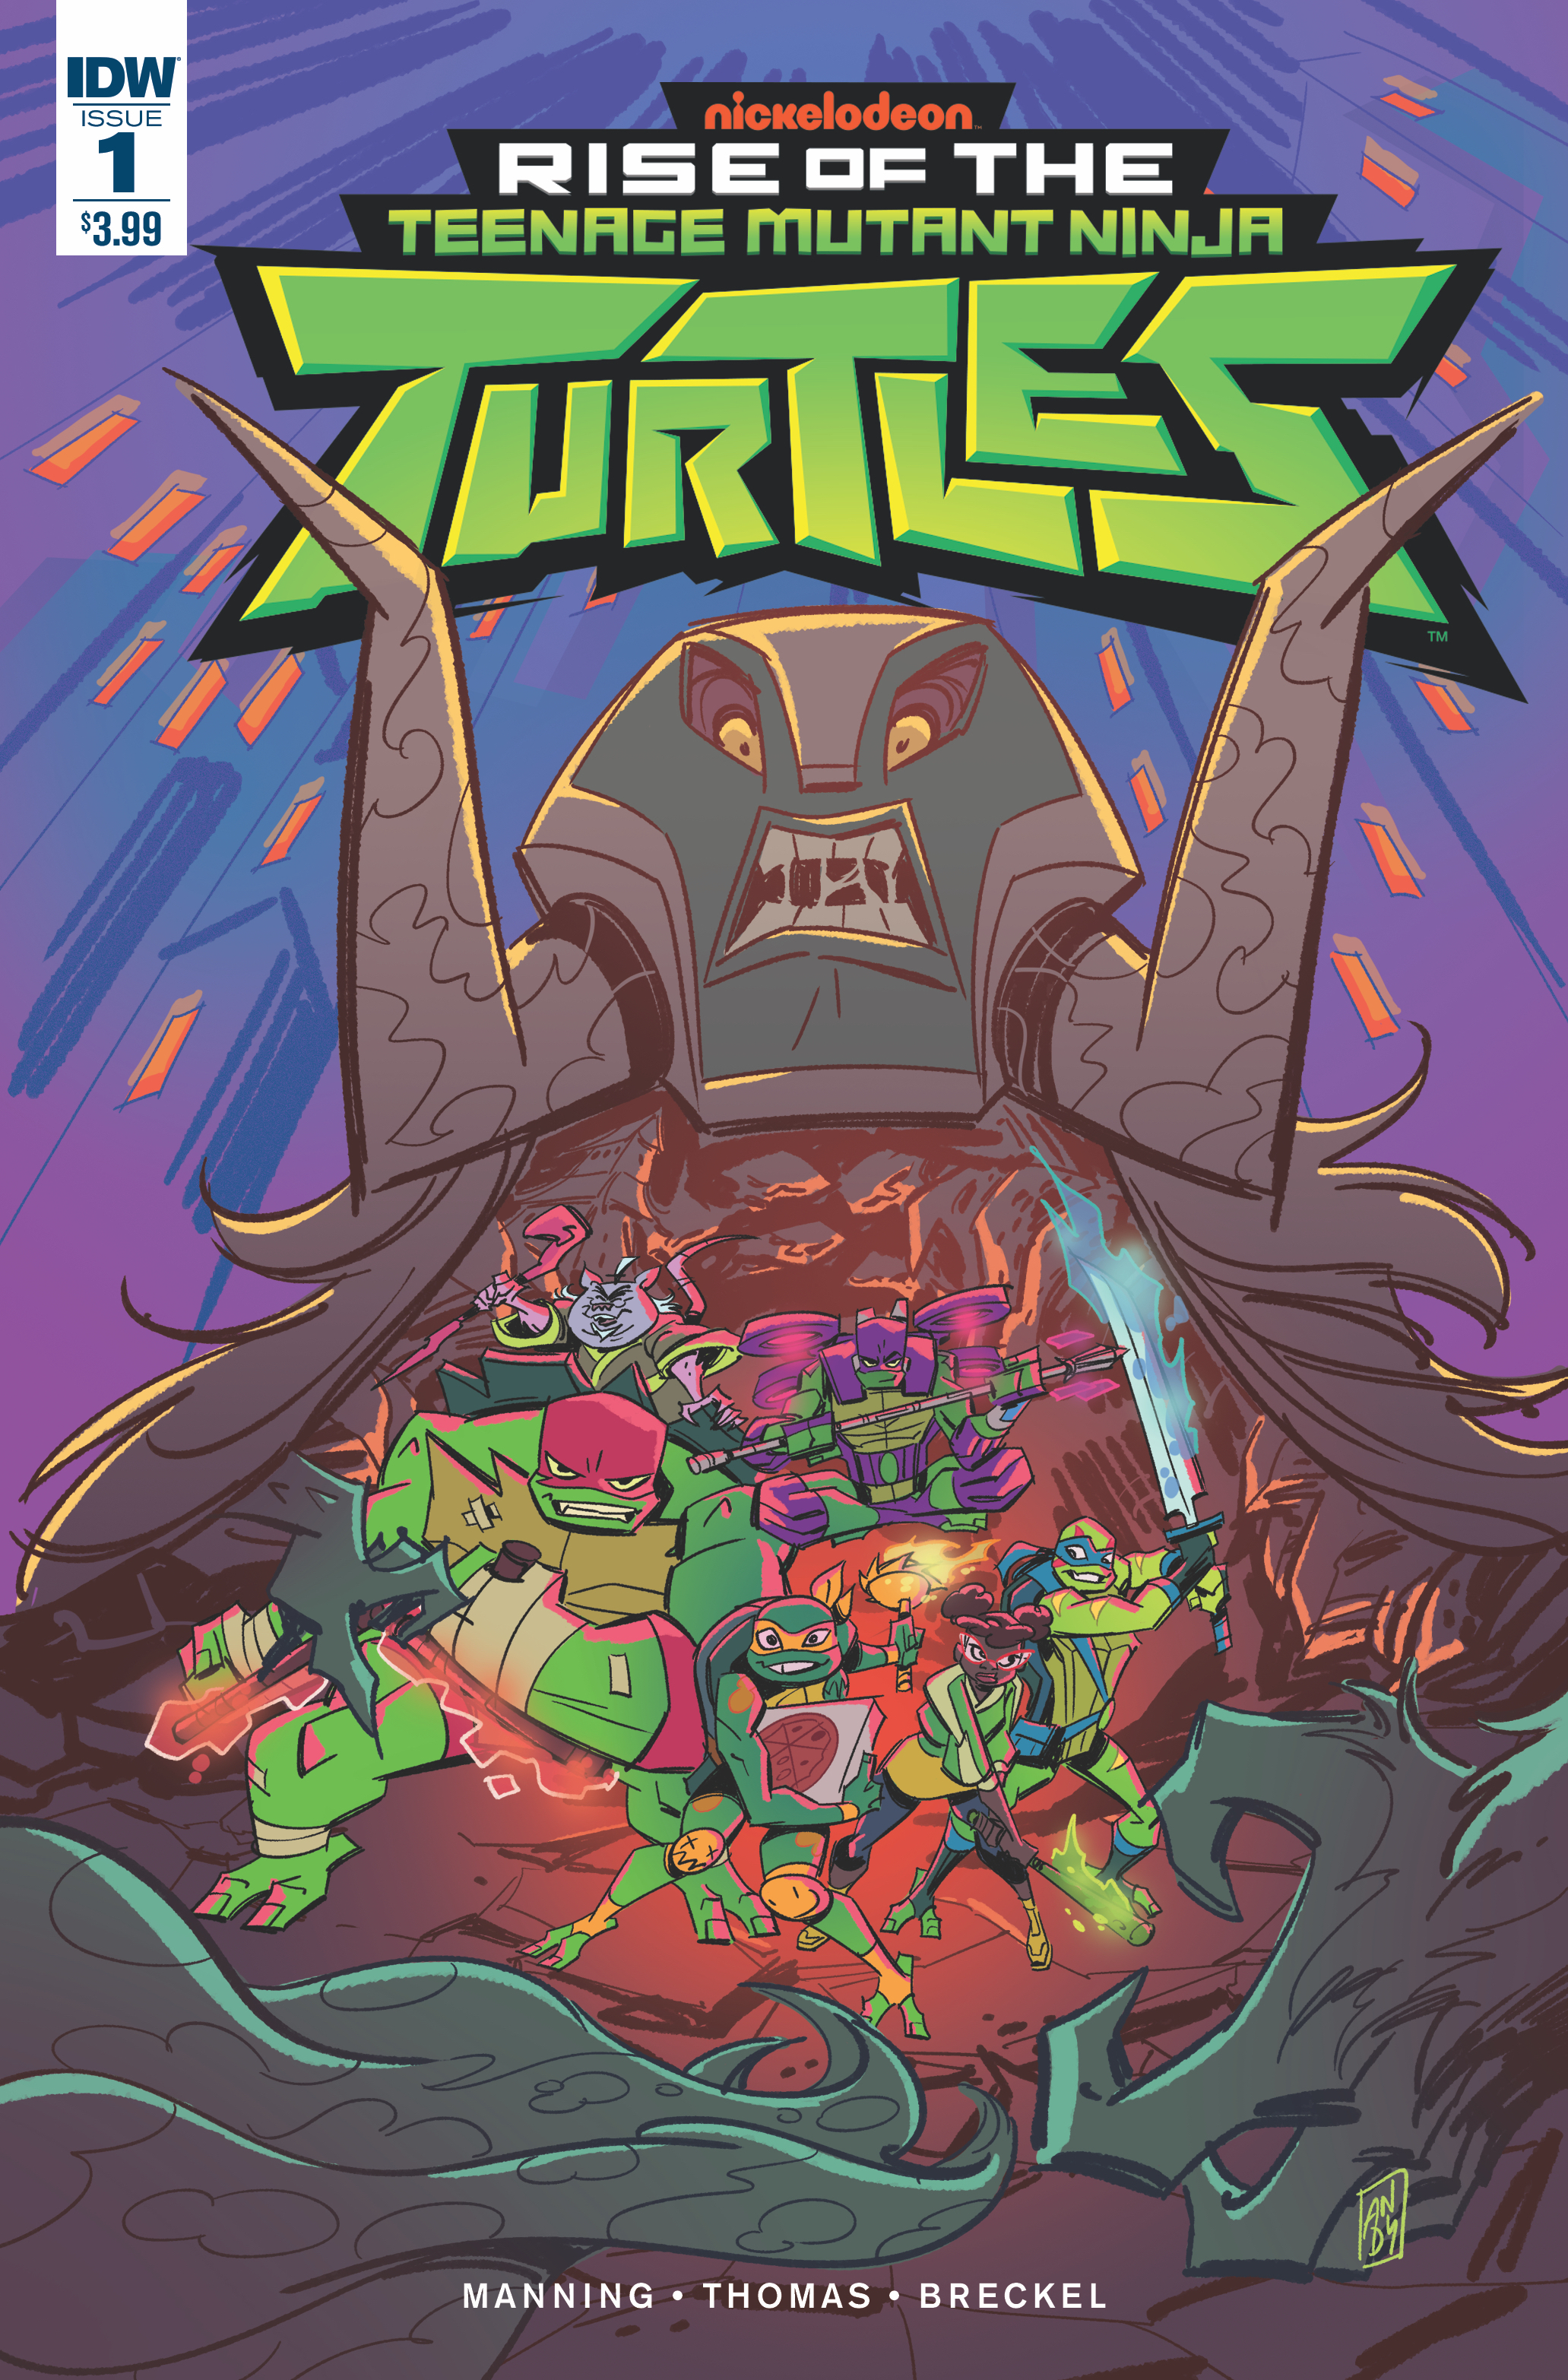 TMNT RISE OF THE TMNT #1